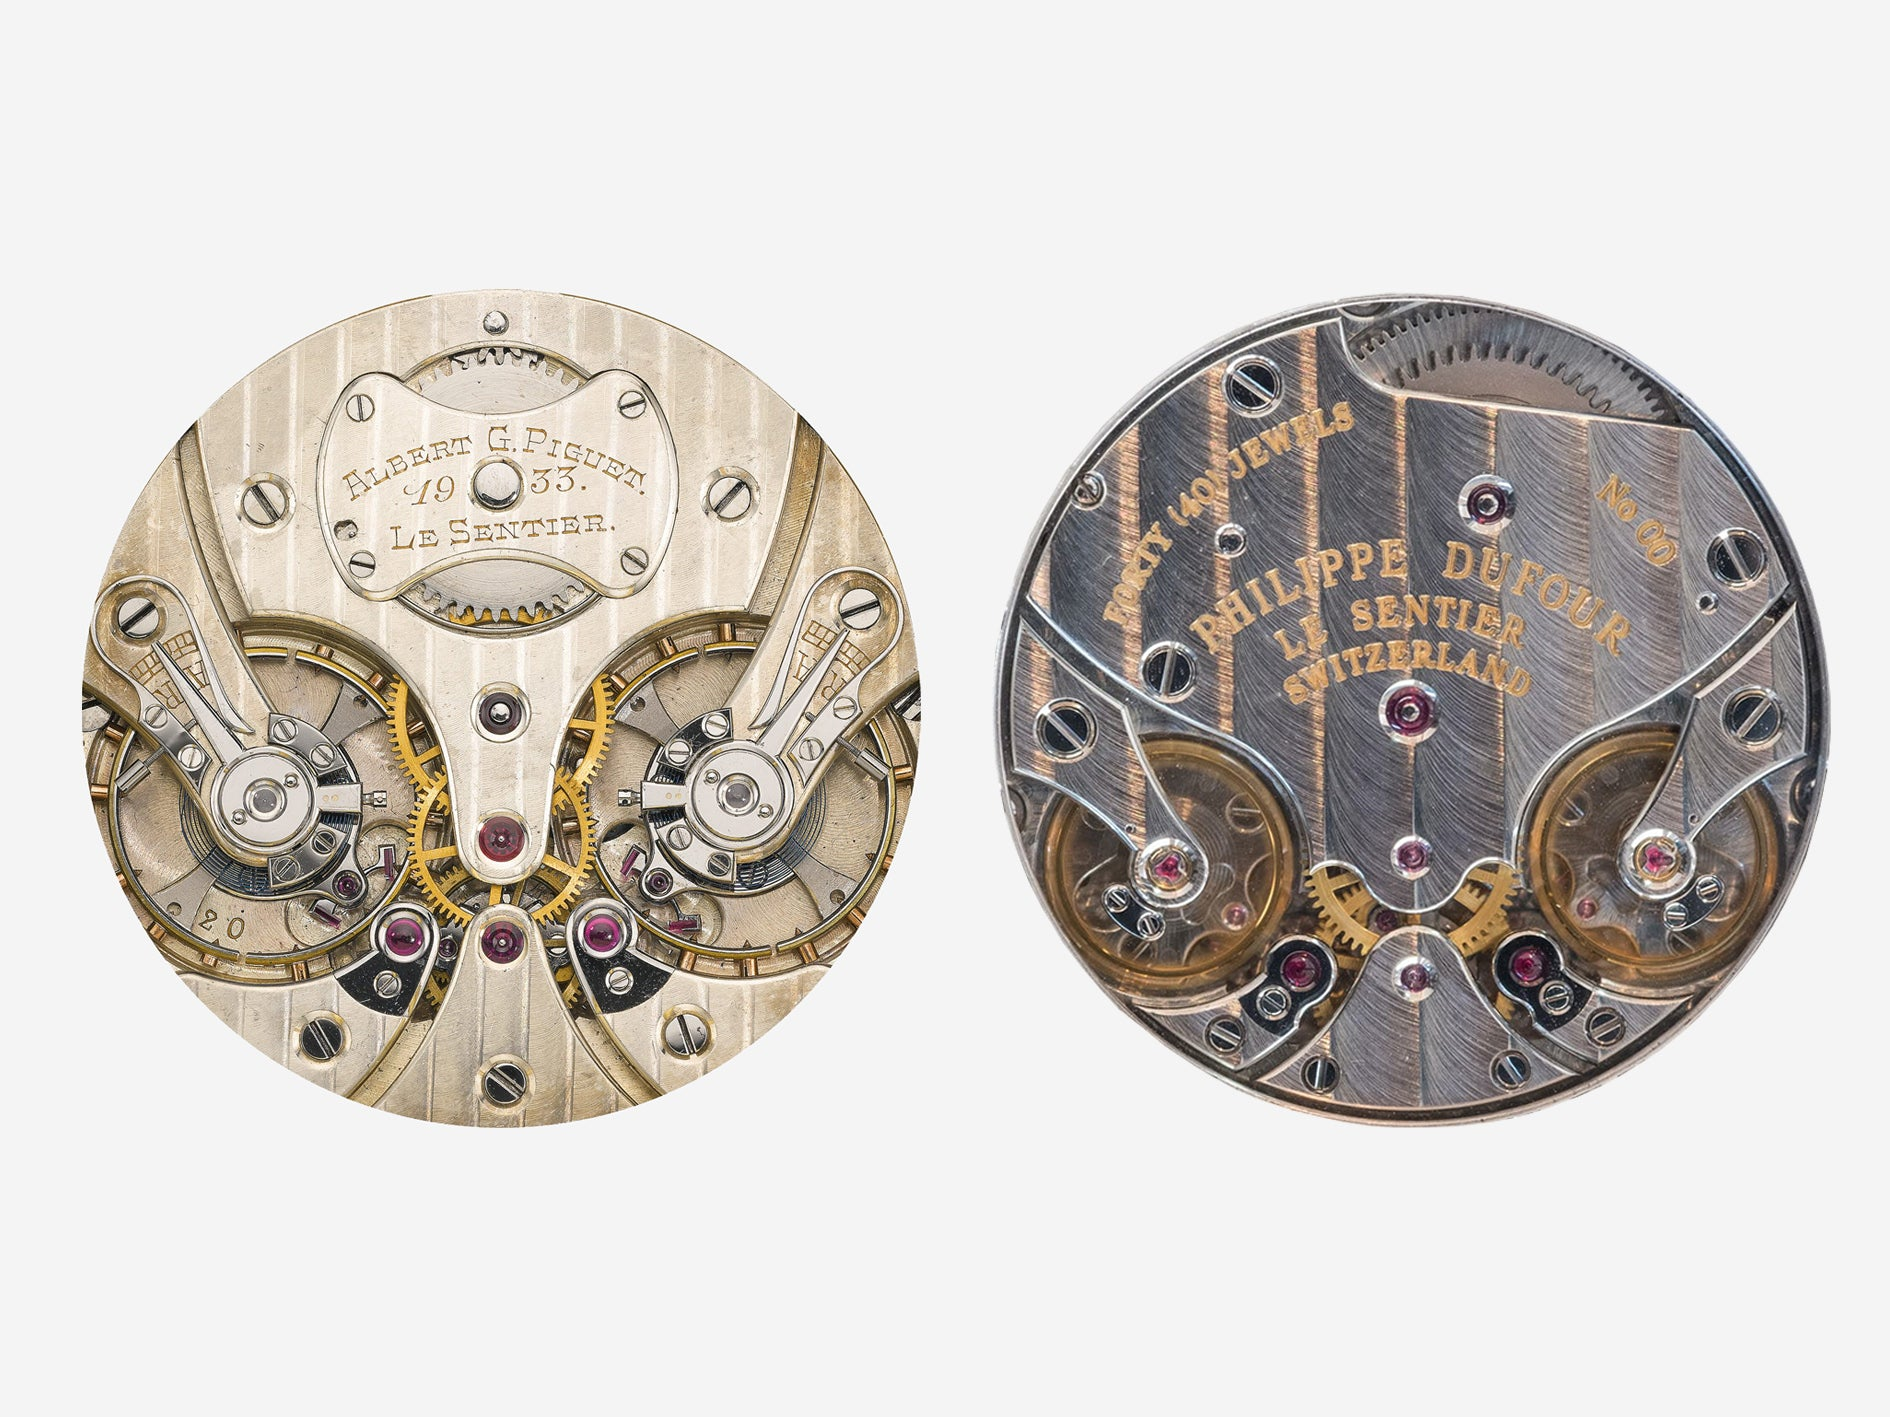 Philippe Dufour Duality movement next to a Piguet pocket watch movement from the 1930s A Collected Man London